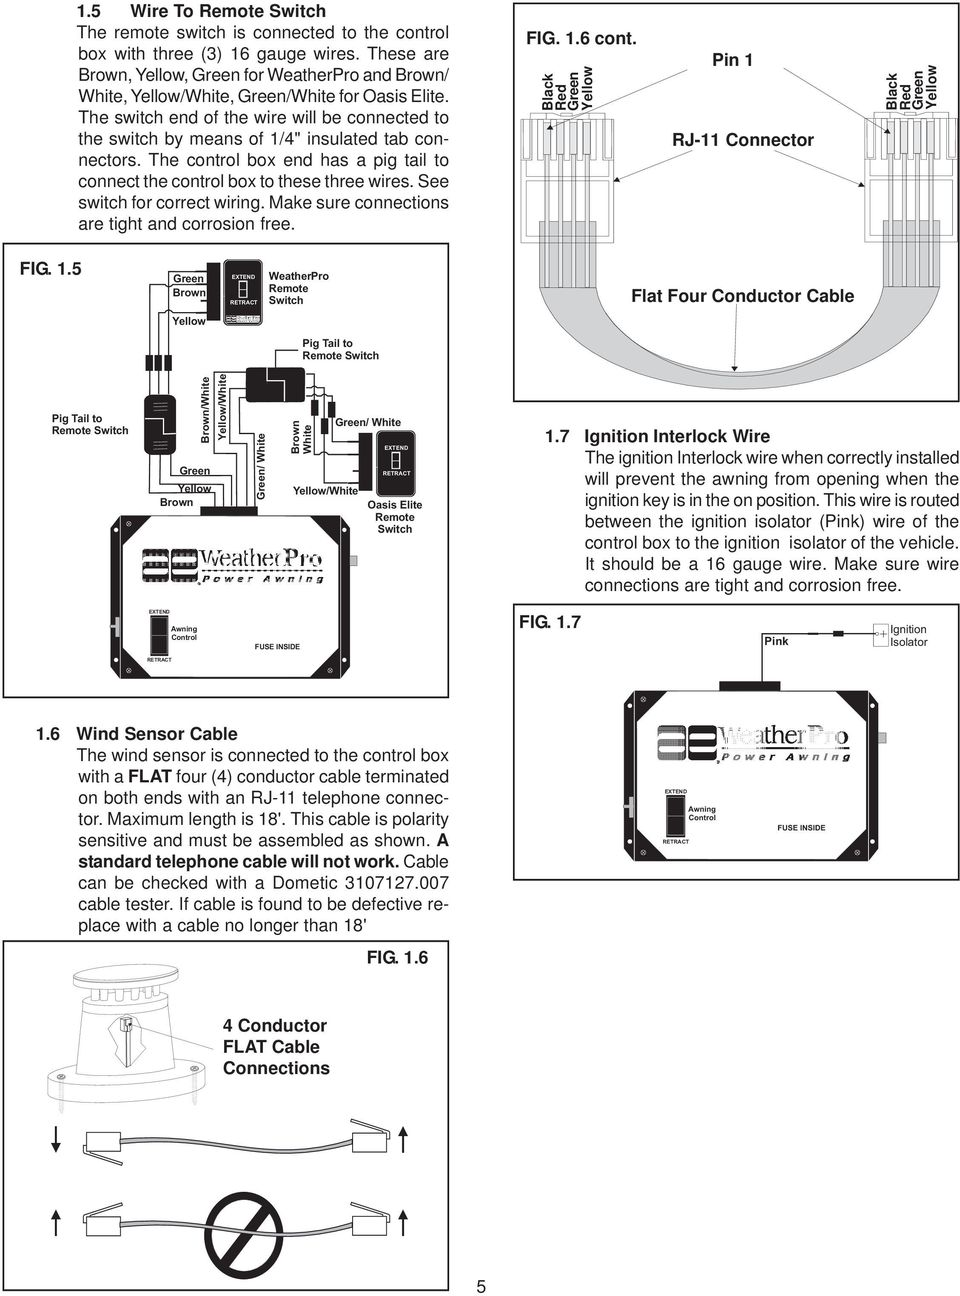 Diagnostic Service Manual Pdf Wiring Diagram For Ignition Vtween See Switch Correct Make Sure Connections Are Tight And Corrosion Free Fig